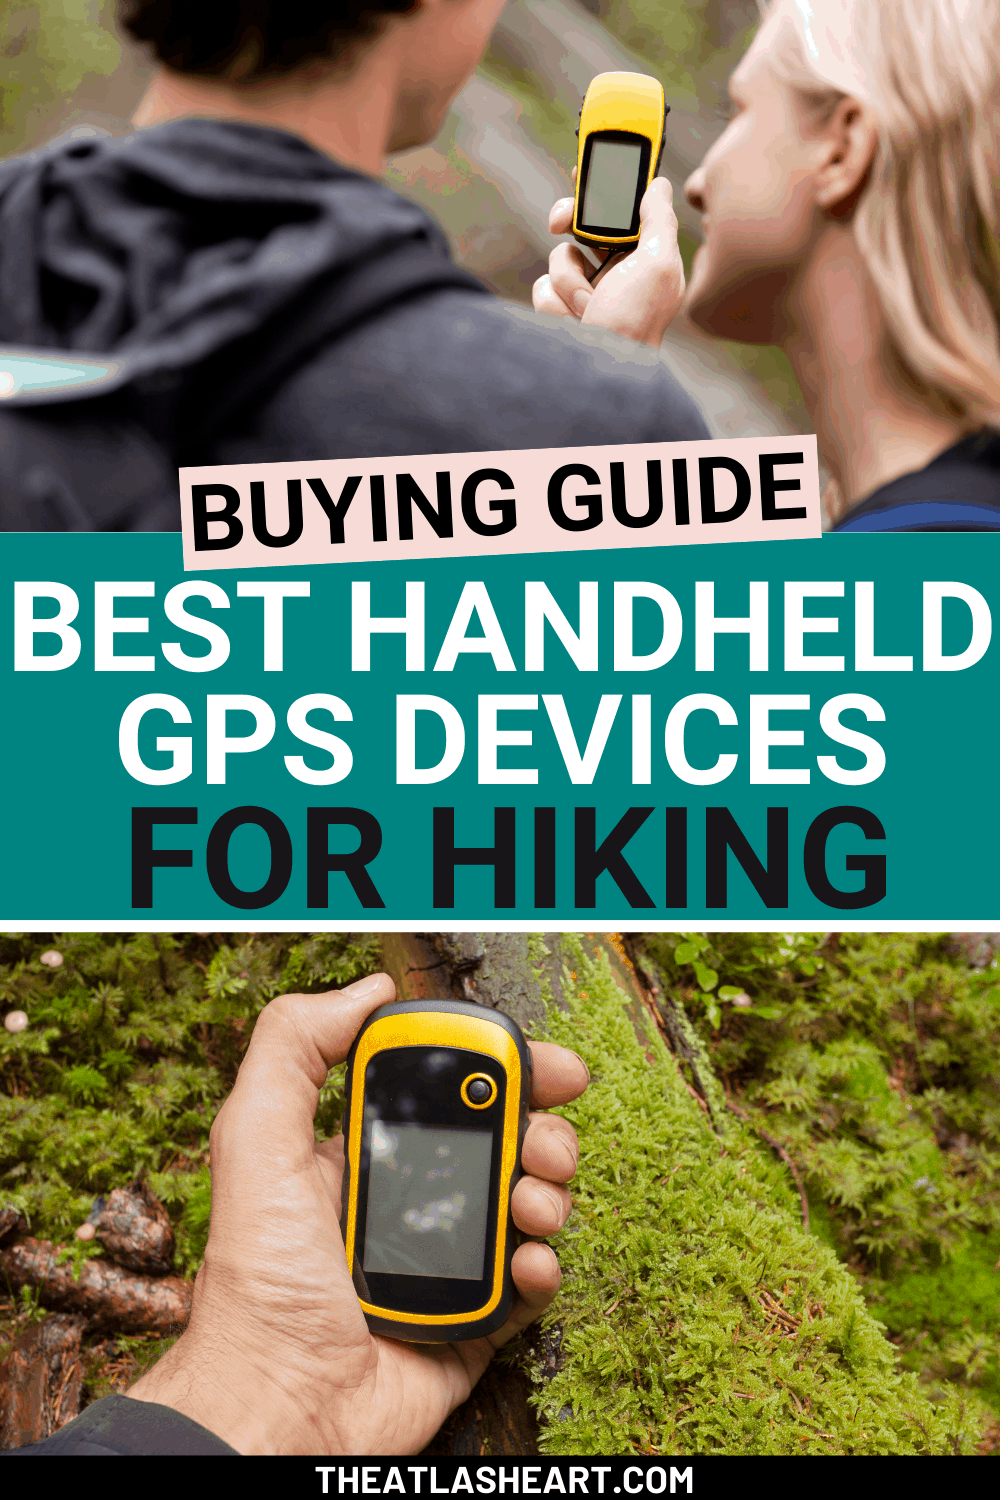 8 Best Handheld GPS Devices for Hiking (2021 Buying Guide)